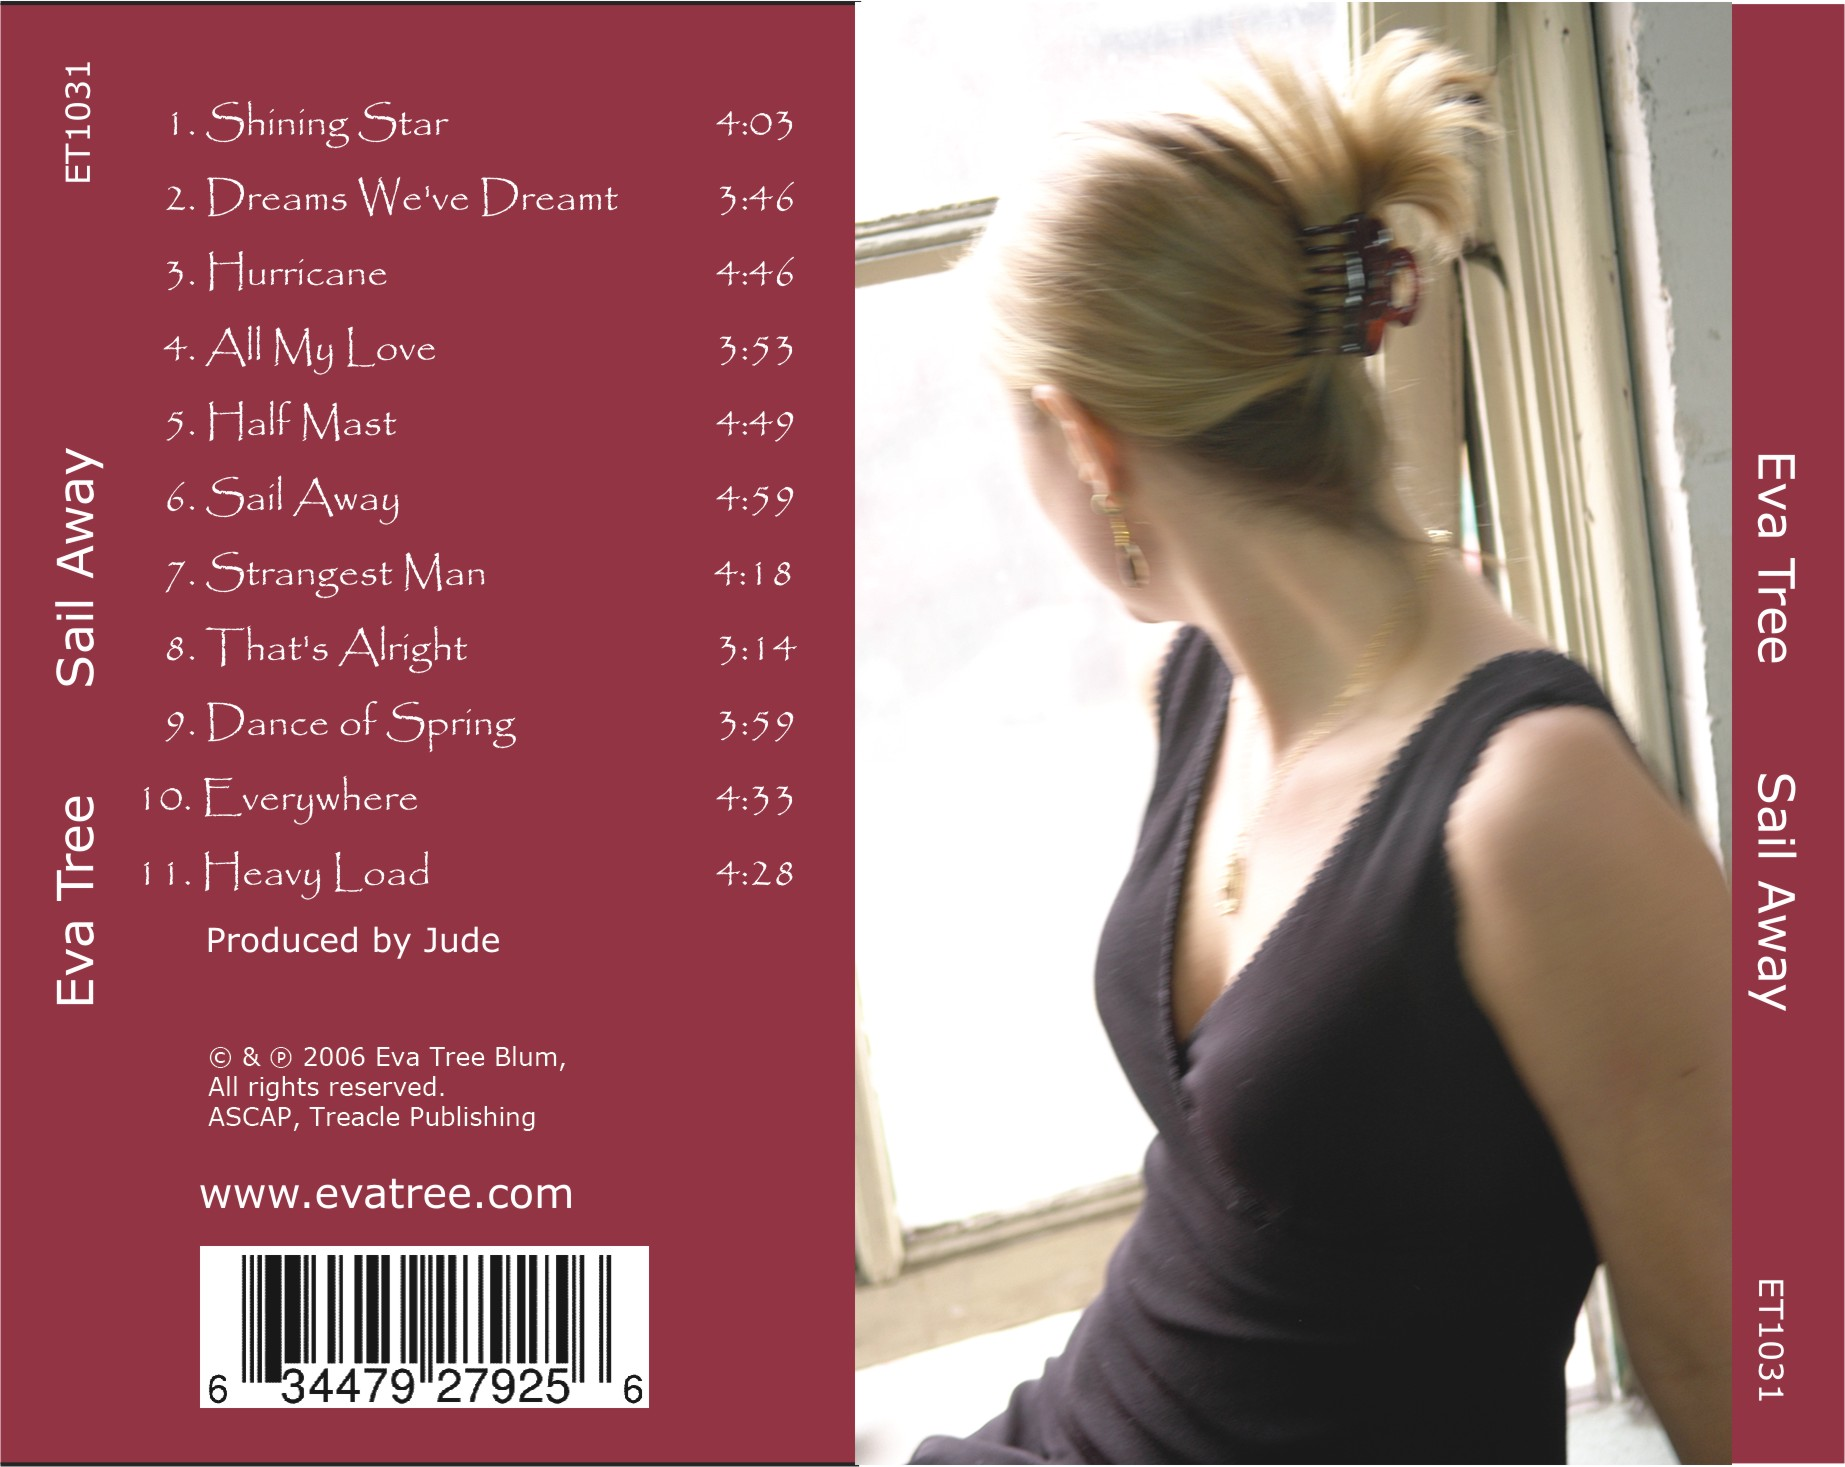 Eva Tree - Sail Away - CD Traycard Back, Song Contents, Copyright, Barcode,  Photo by Michael Bauer